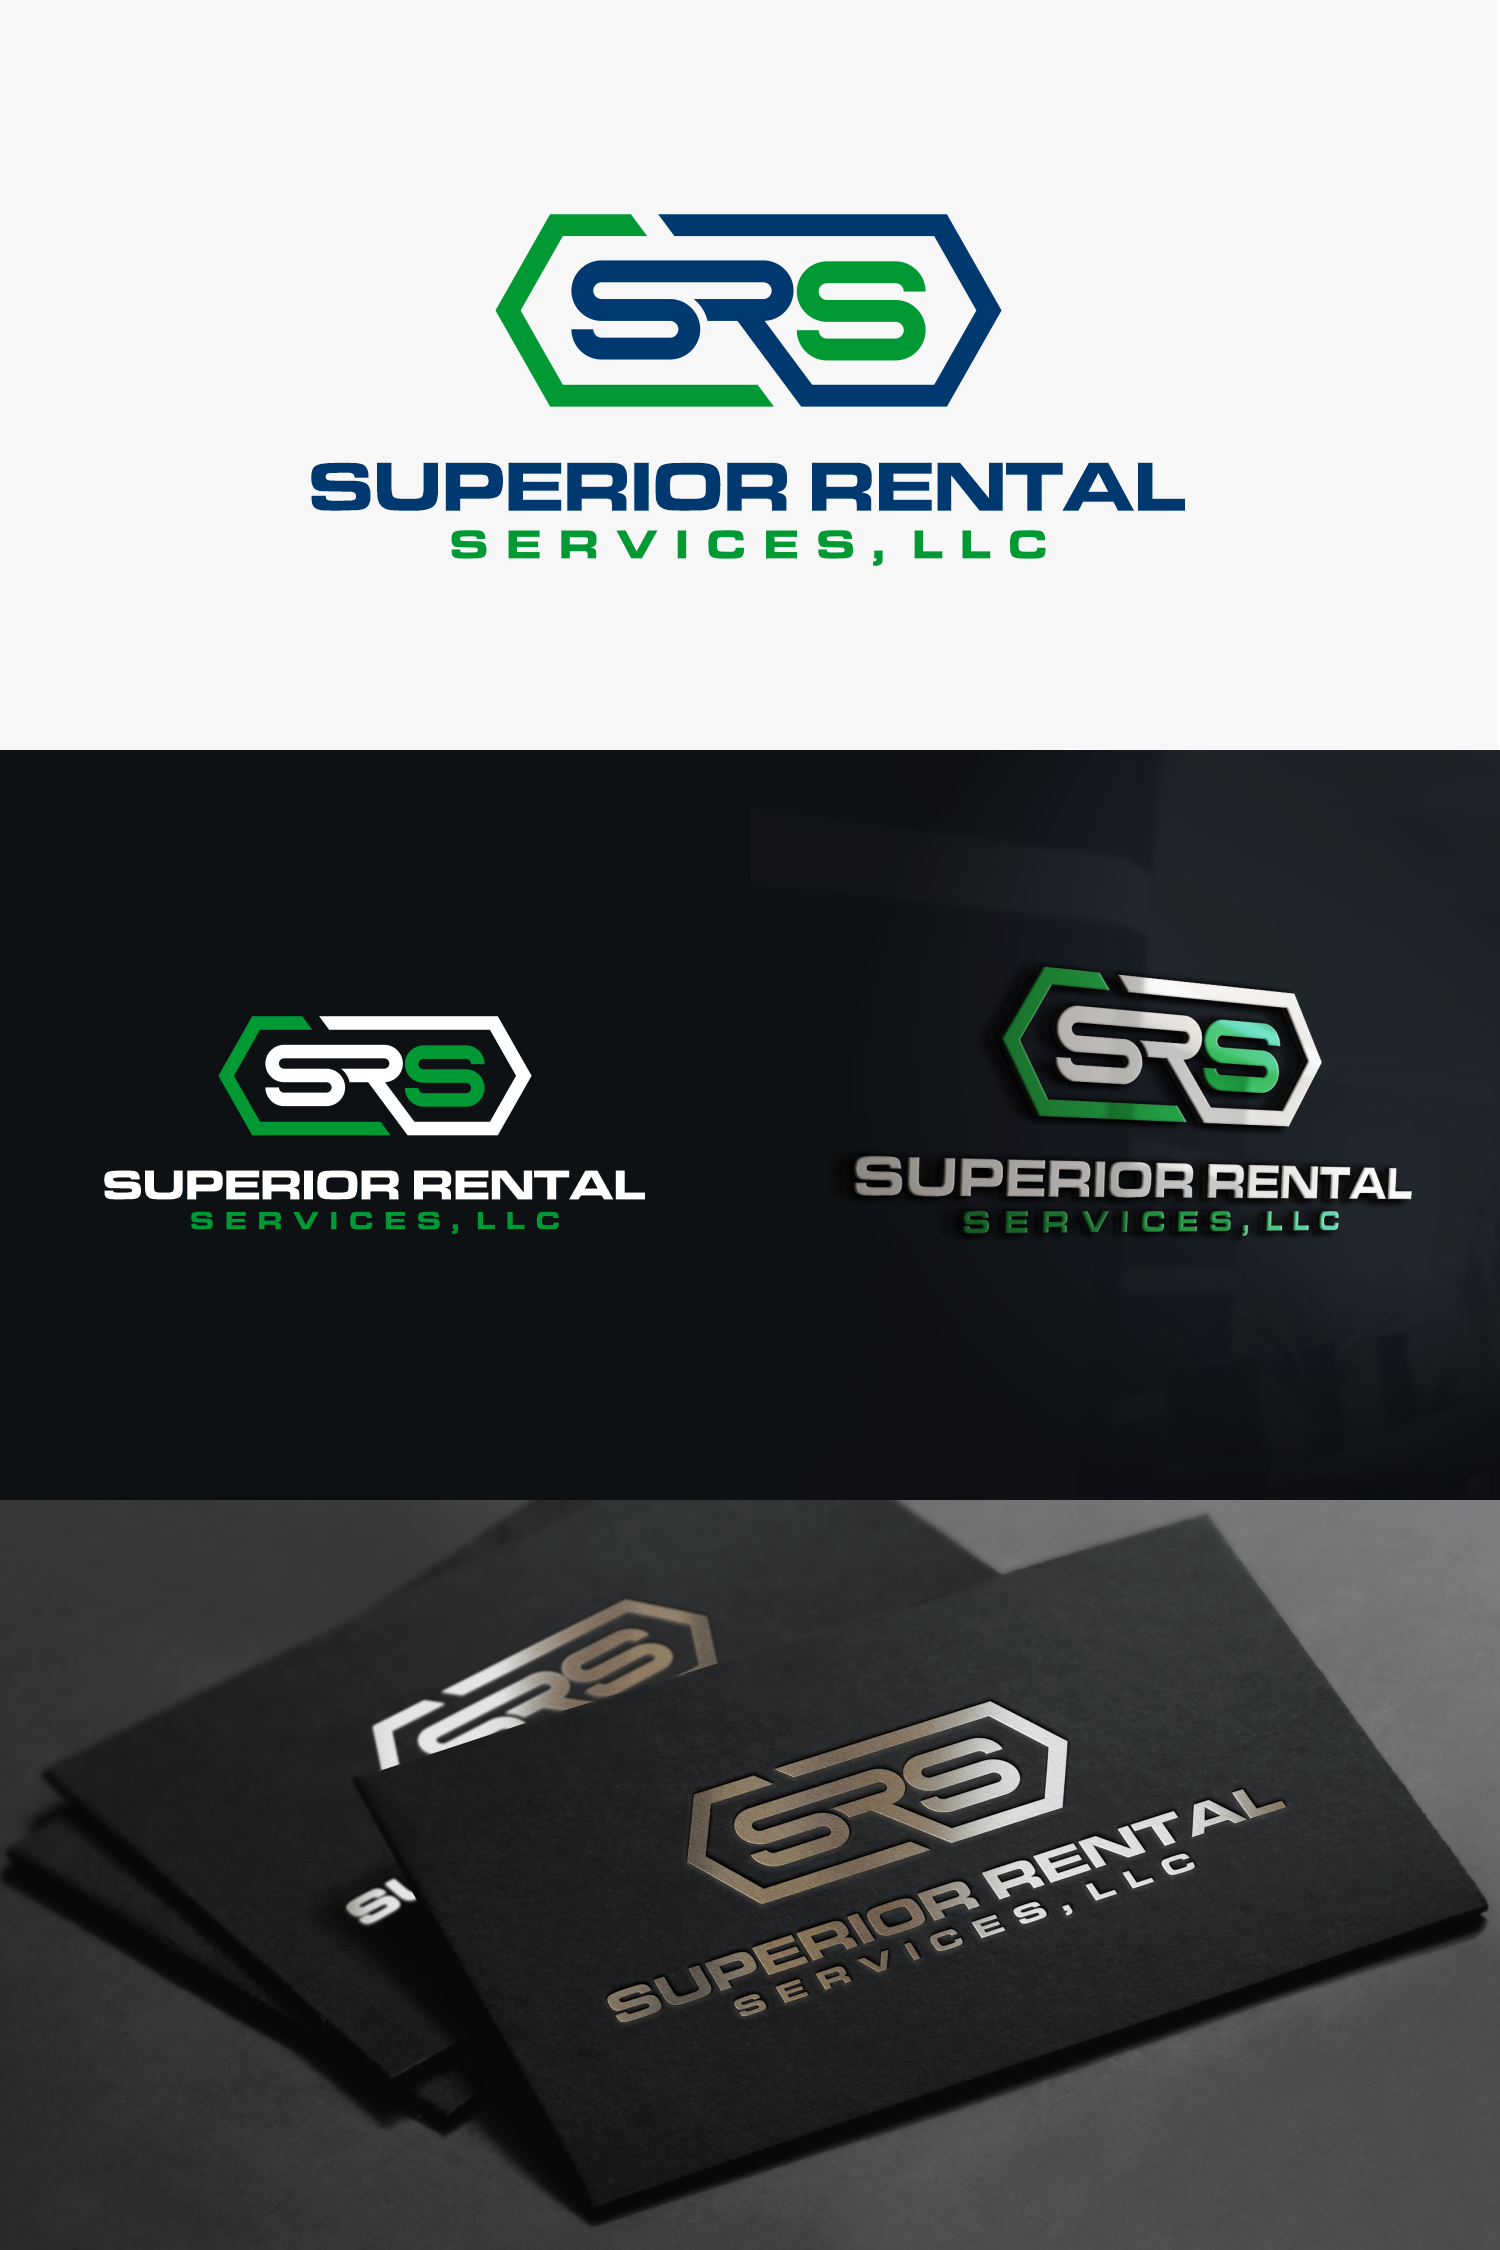 Looking for a simple but professional looking logo design for my rental business.